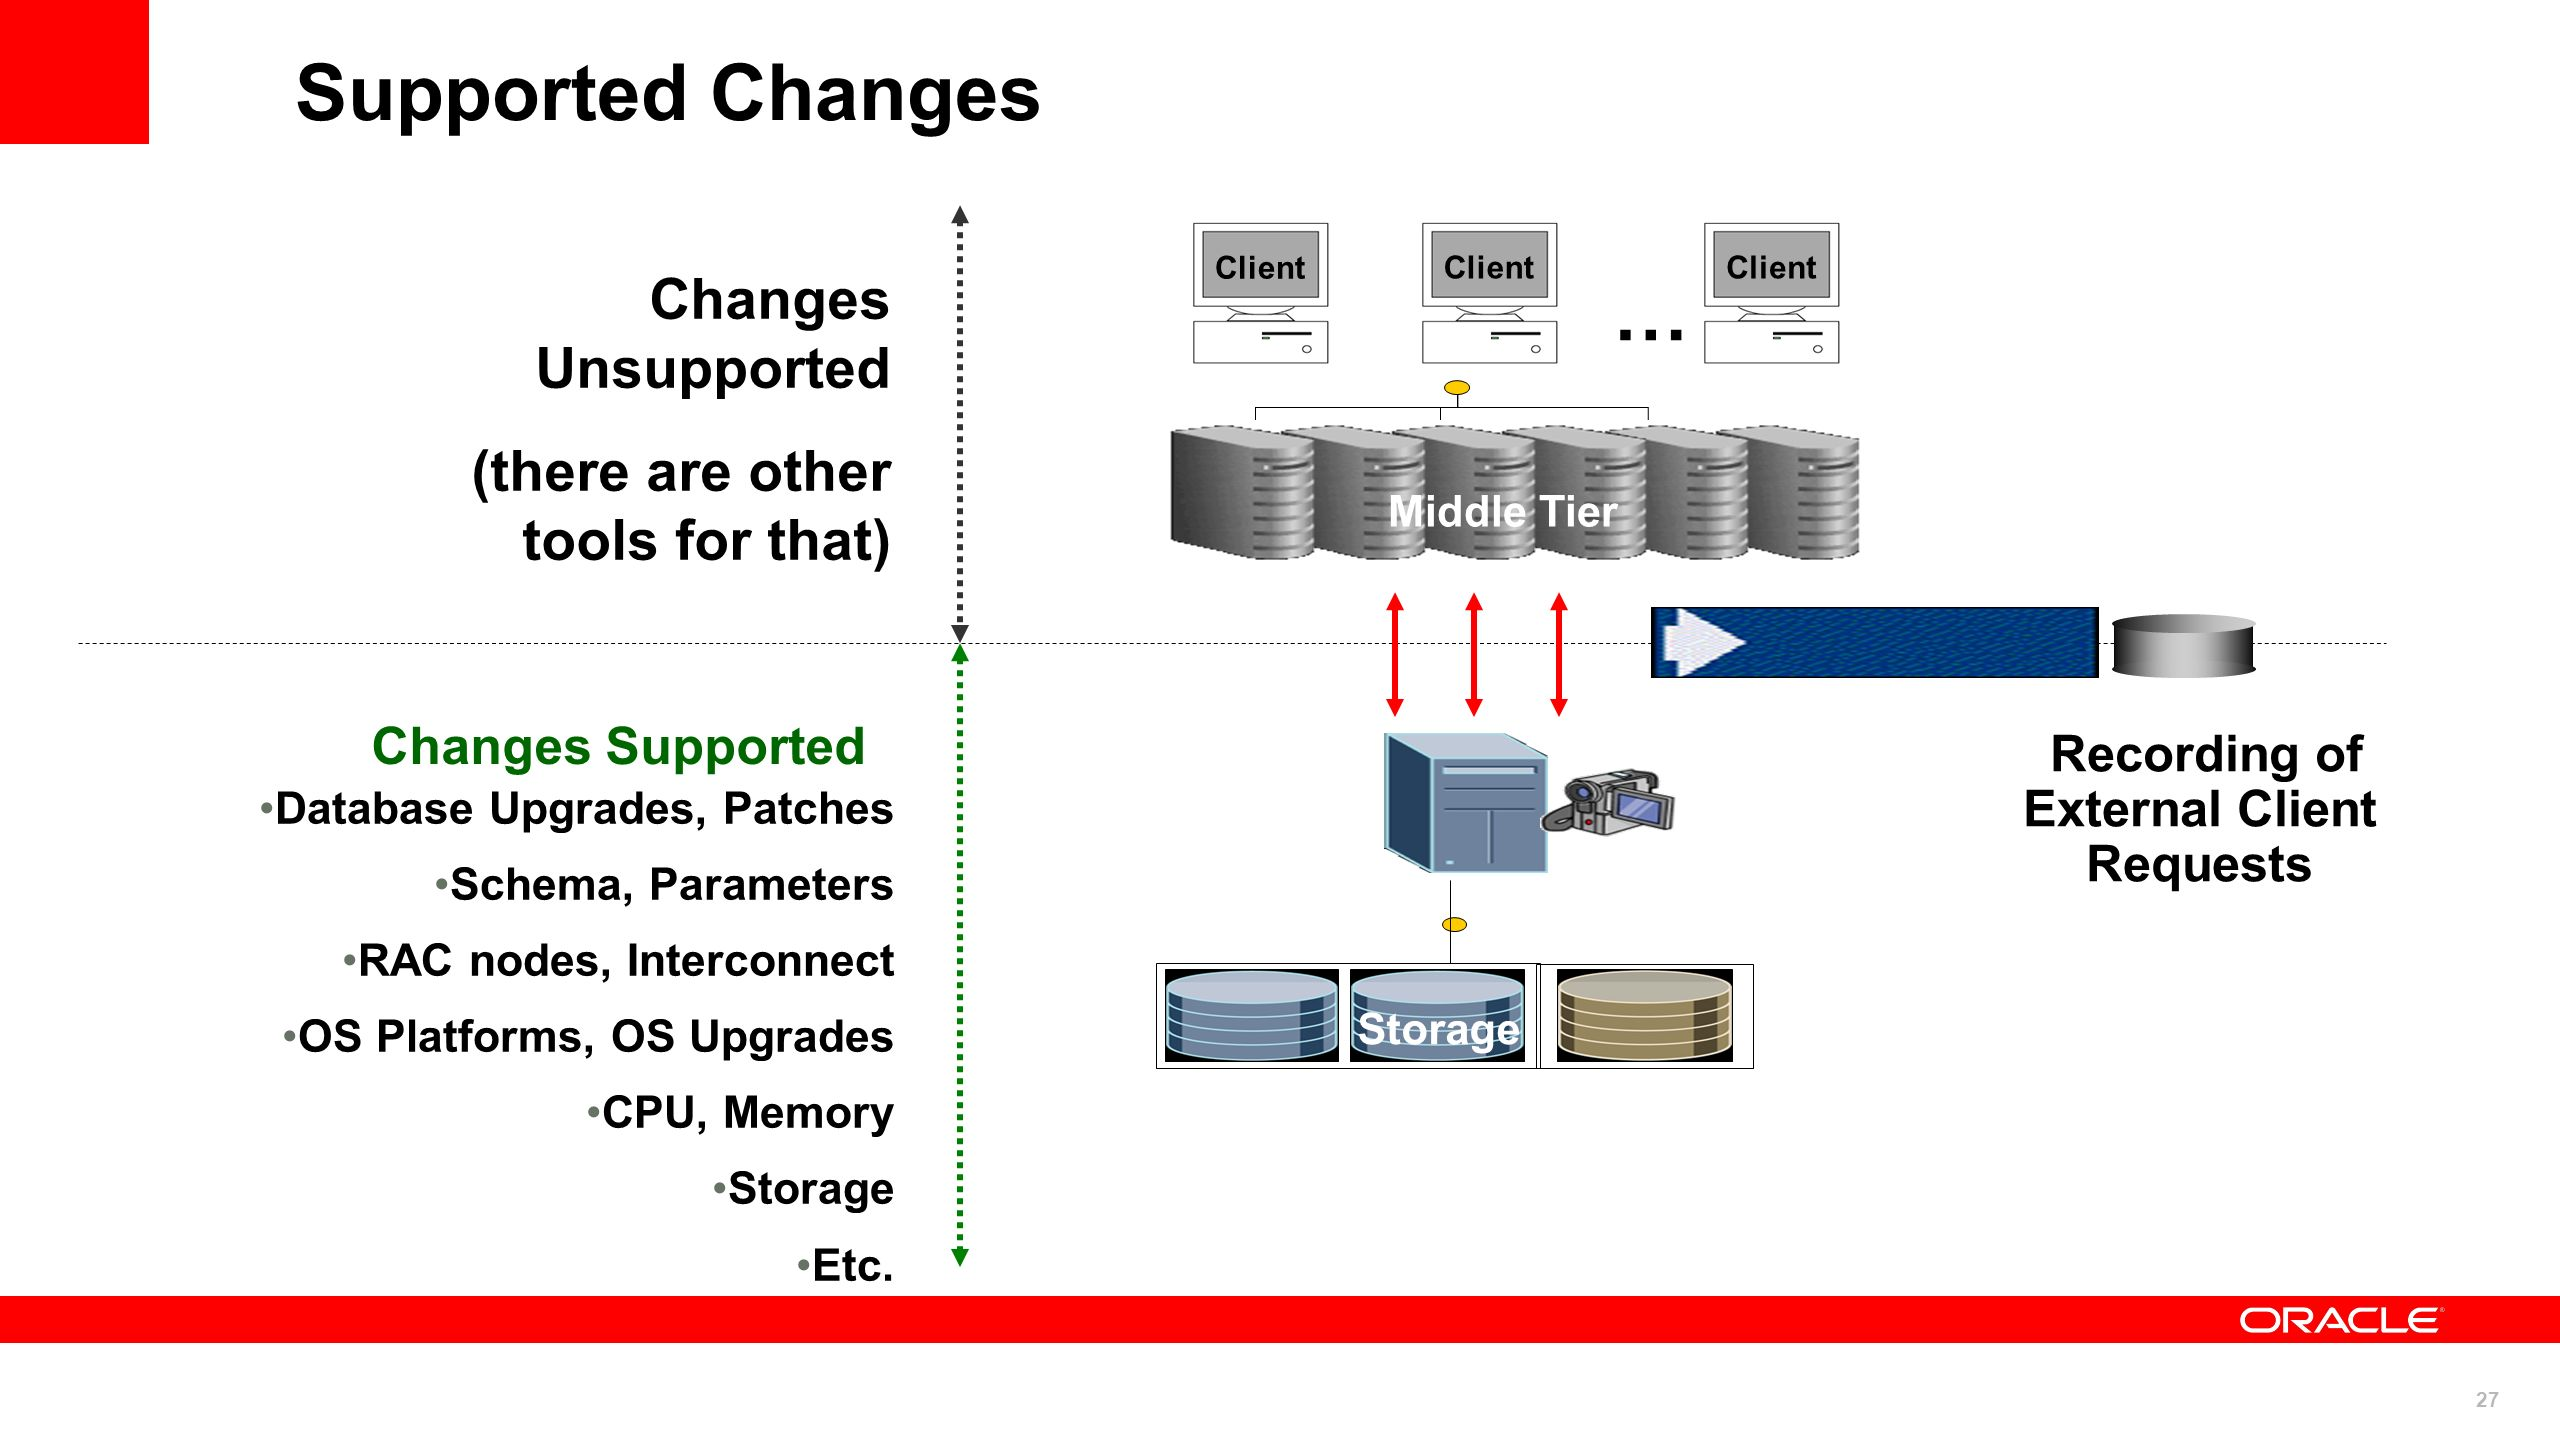 27 Supported Changes Changes Supported Database Upgrades, Patches Schema, Parameters RAC nodes, Interconnect OS Platforms, OS Upgrades CPU, Memory Sto